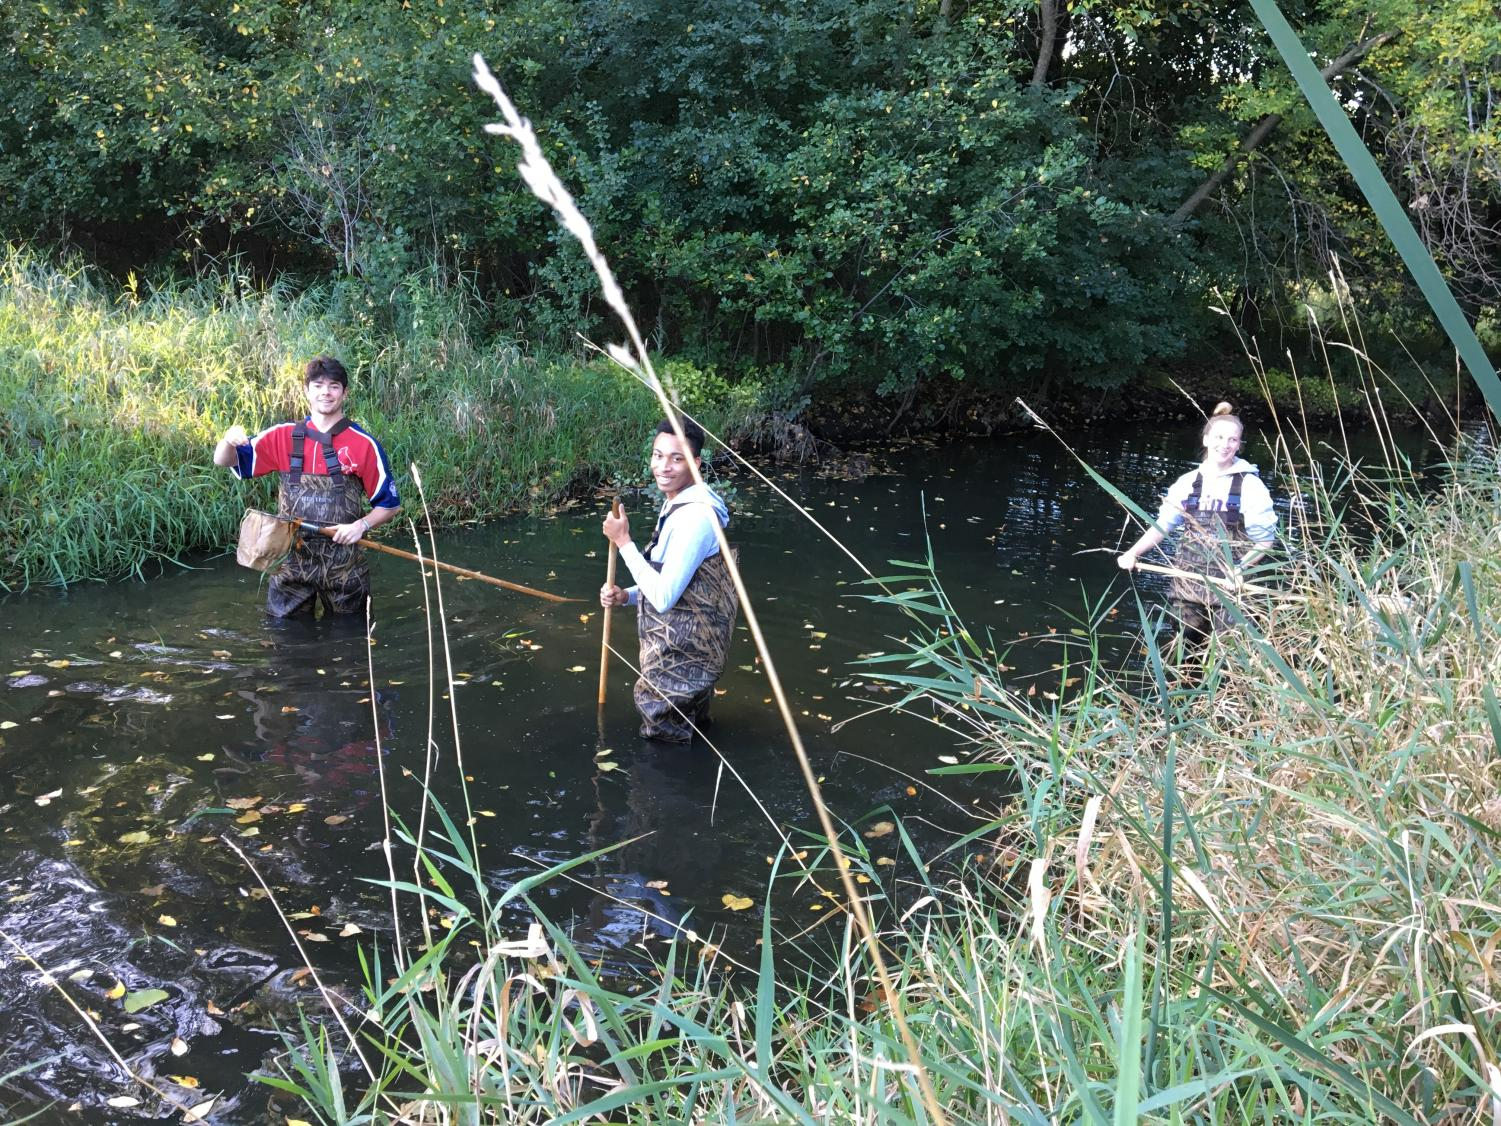 Ecology students put waiters on and jumped into Minnehaha Creek to collect macroinvertebrate samples.